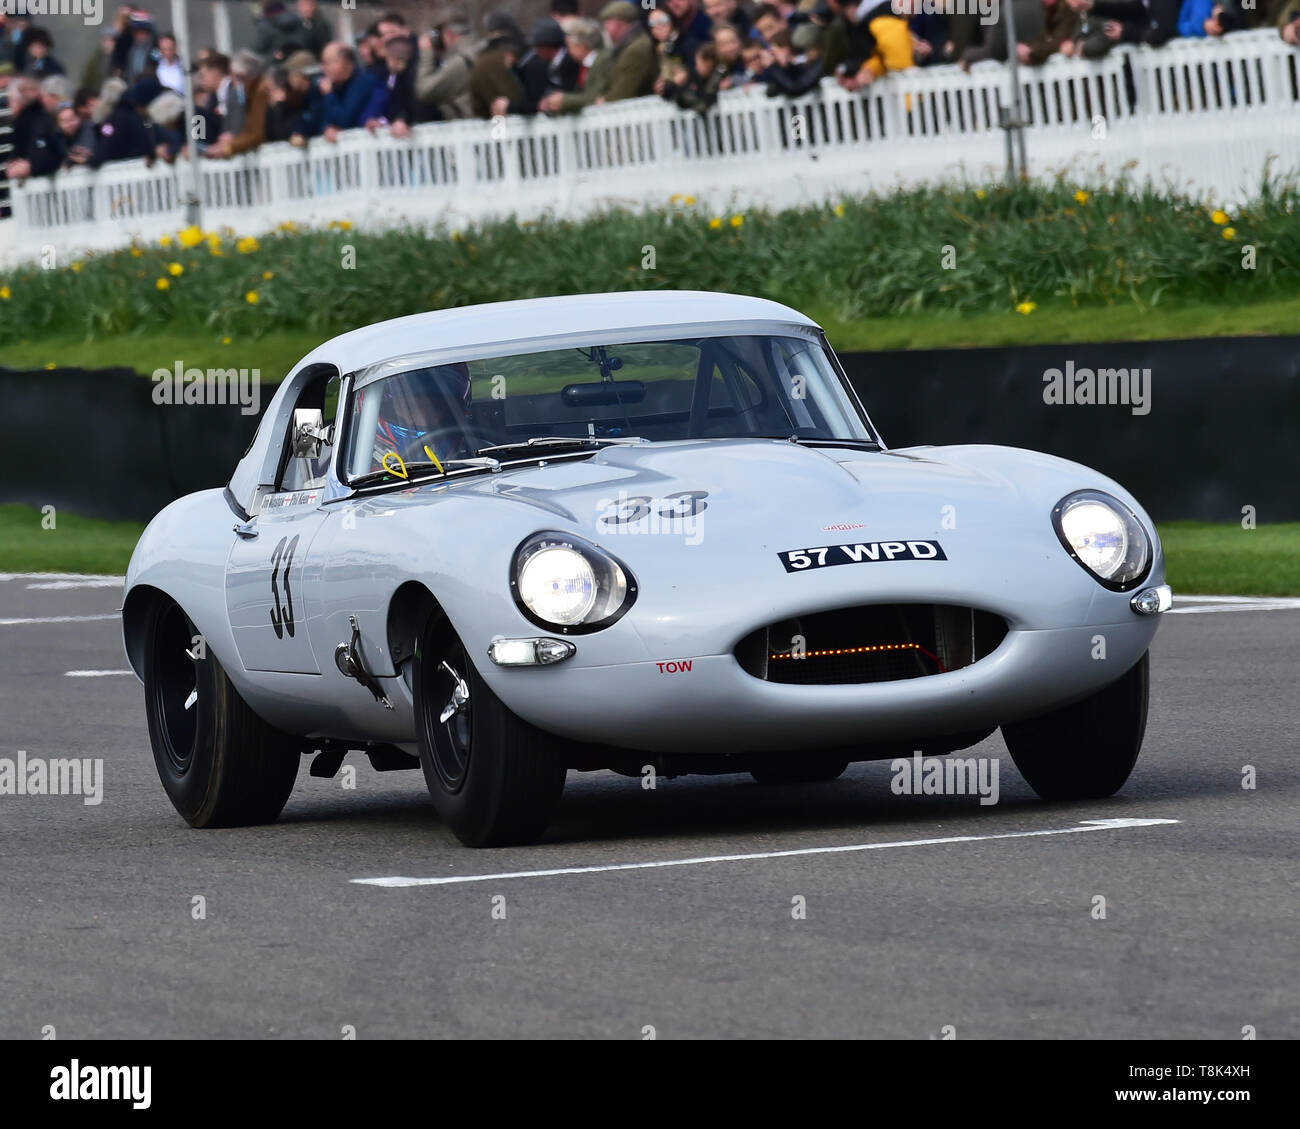 Jon Minshaw, Phil Kean, Jaguar E-Type semi-lightweight, Graham Hill Trophy, Closed cockpit GT cars, Prototype cars, Spirit of the RAC TT Races 1960-19 - Stock Image